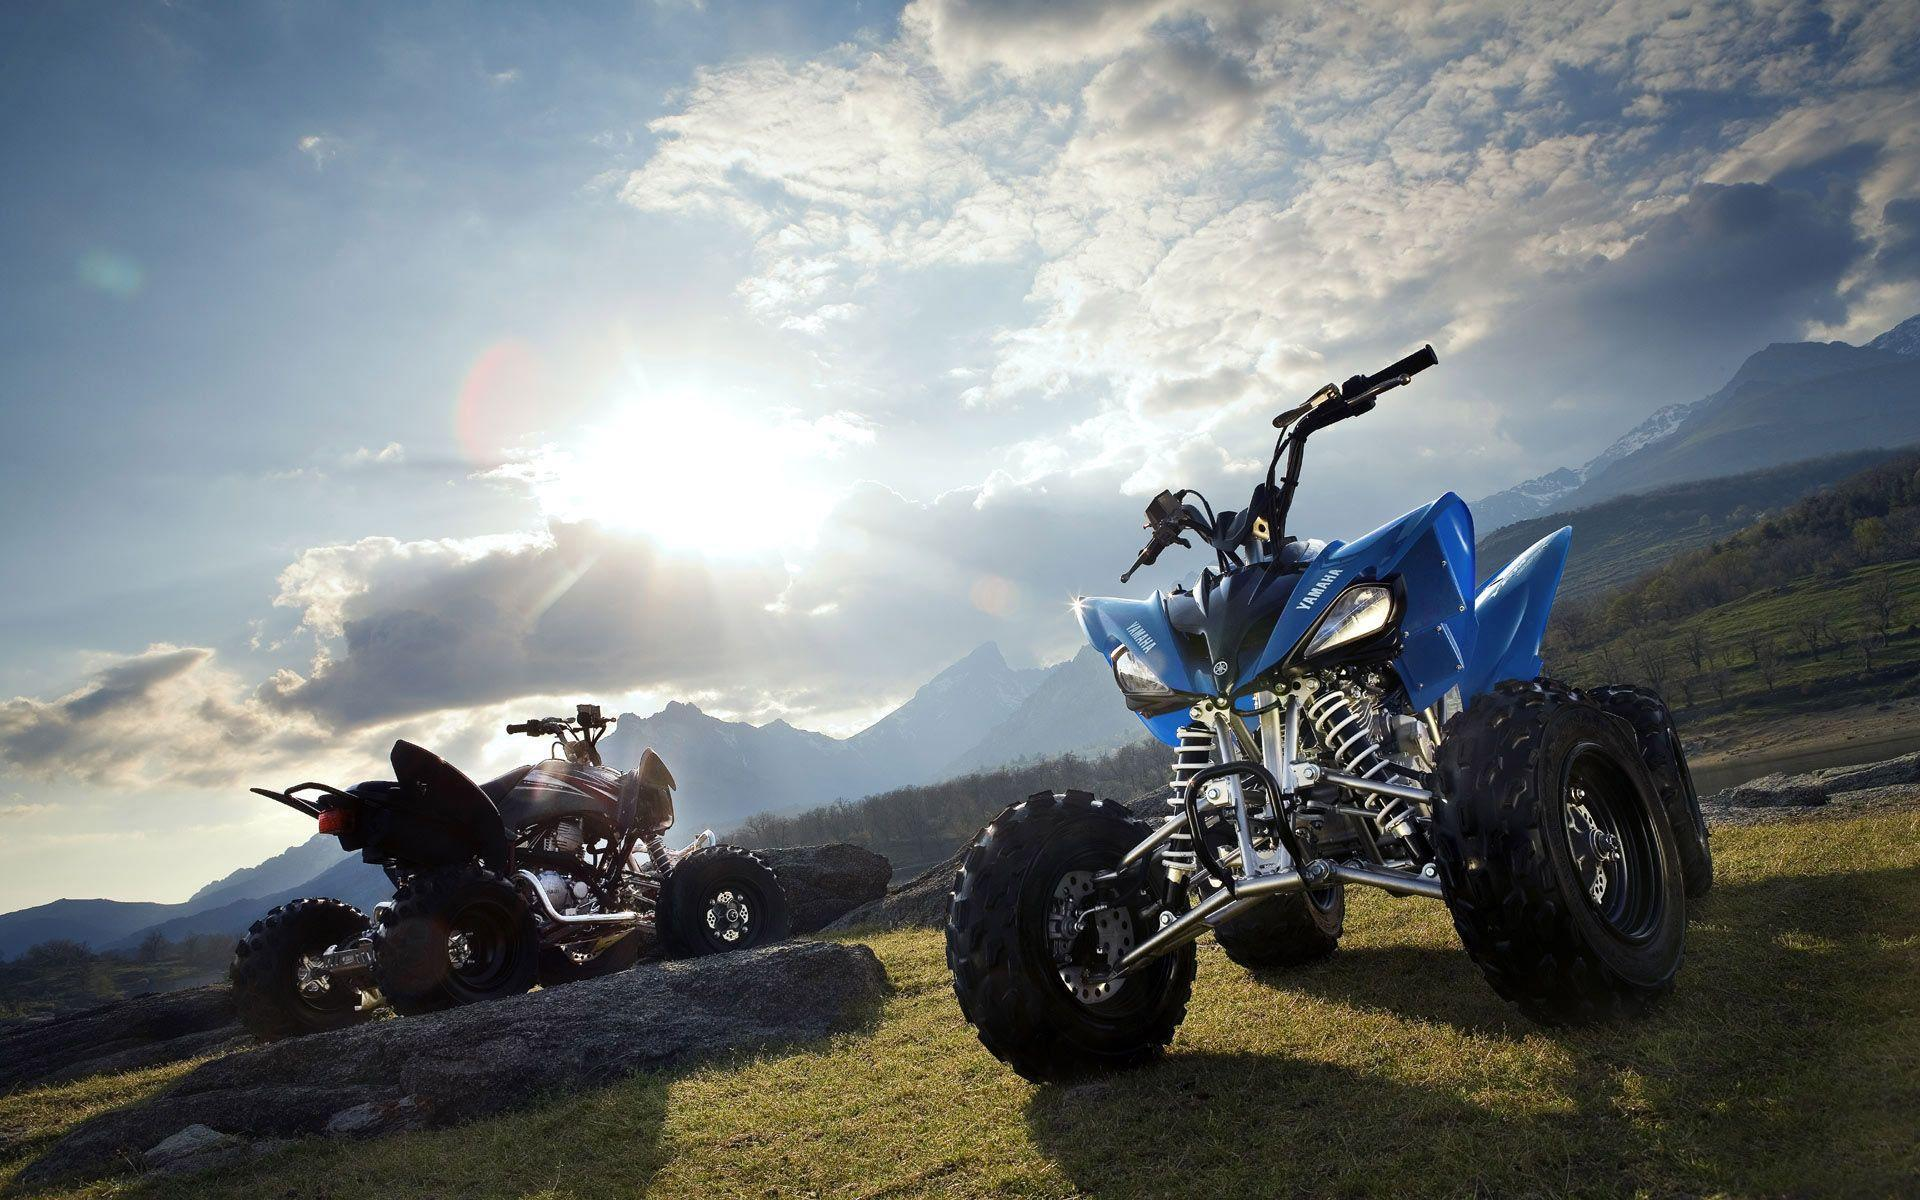 ATV Ride wallpaper – wallpaper free download